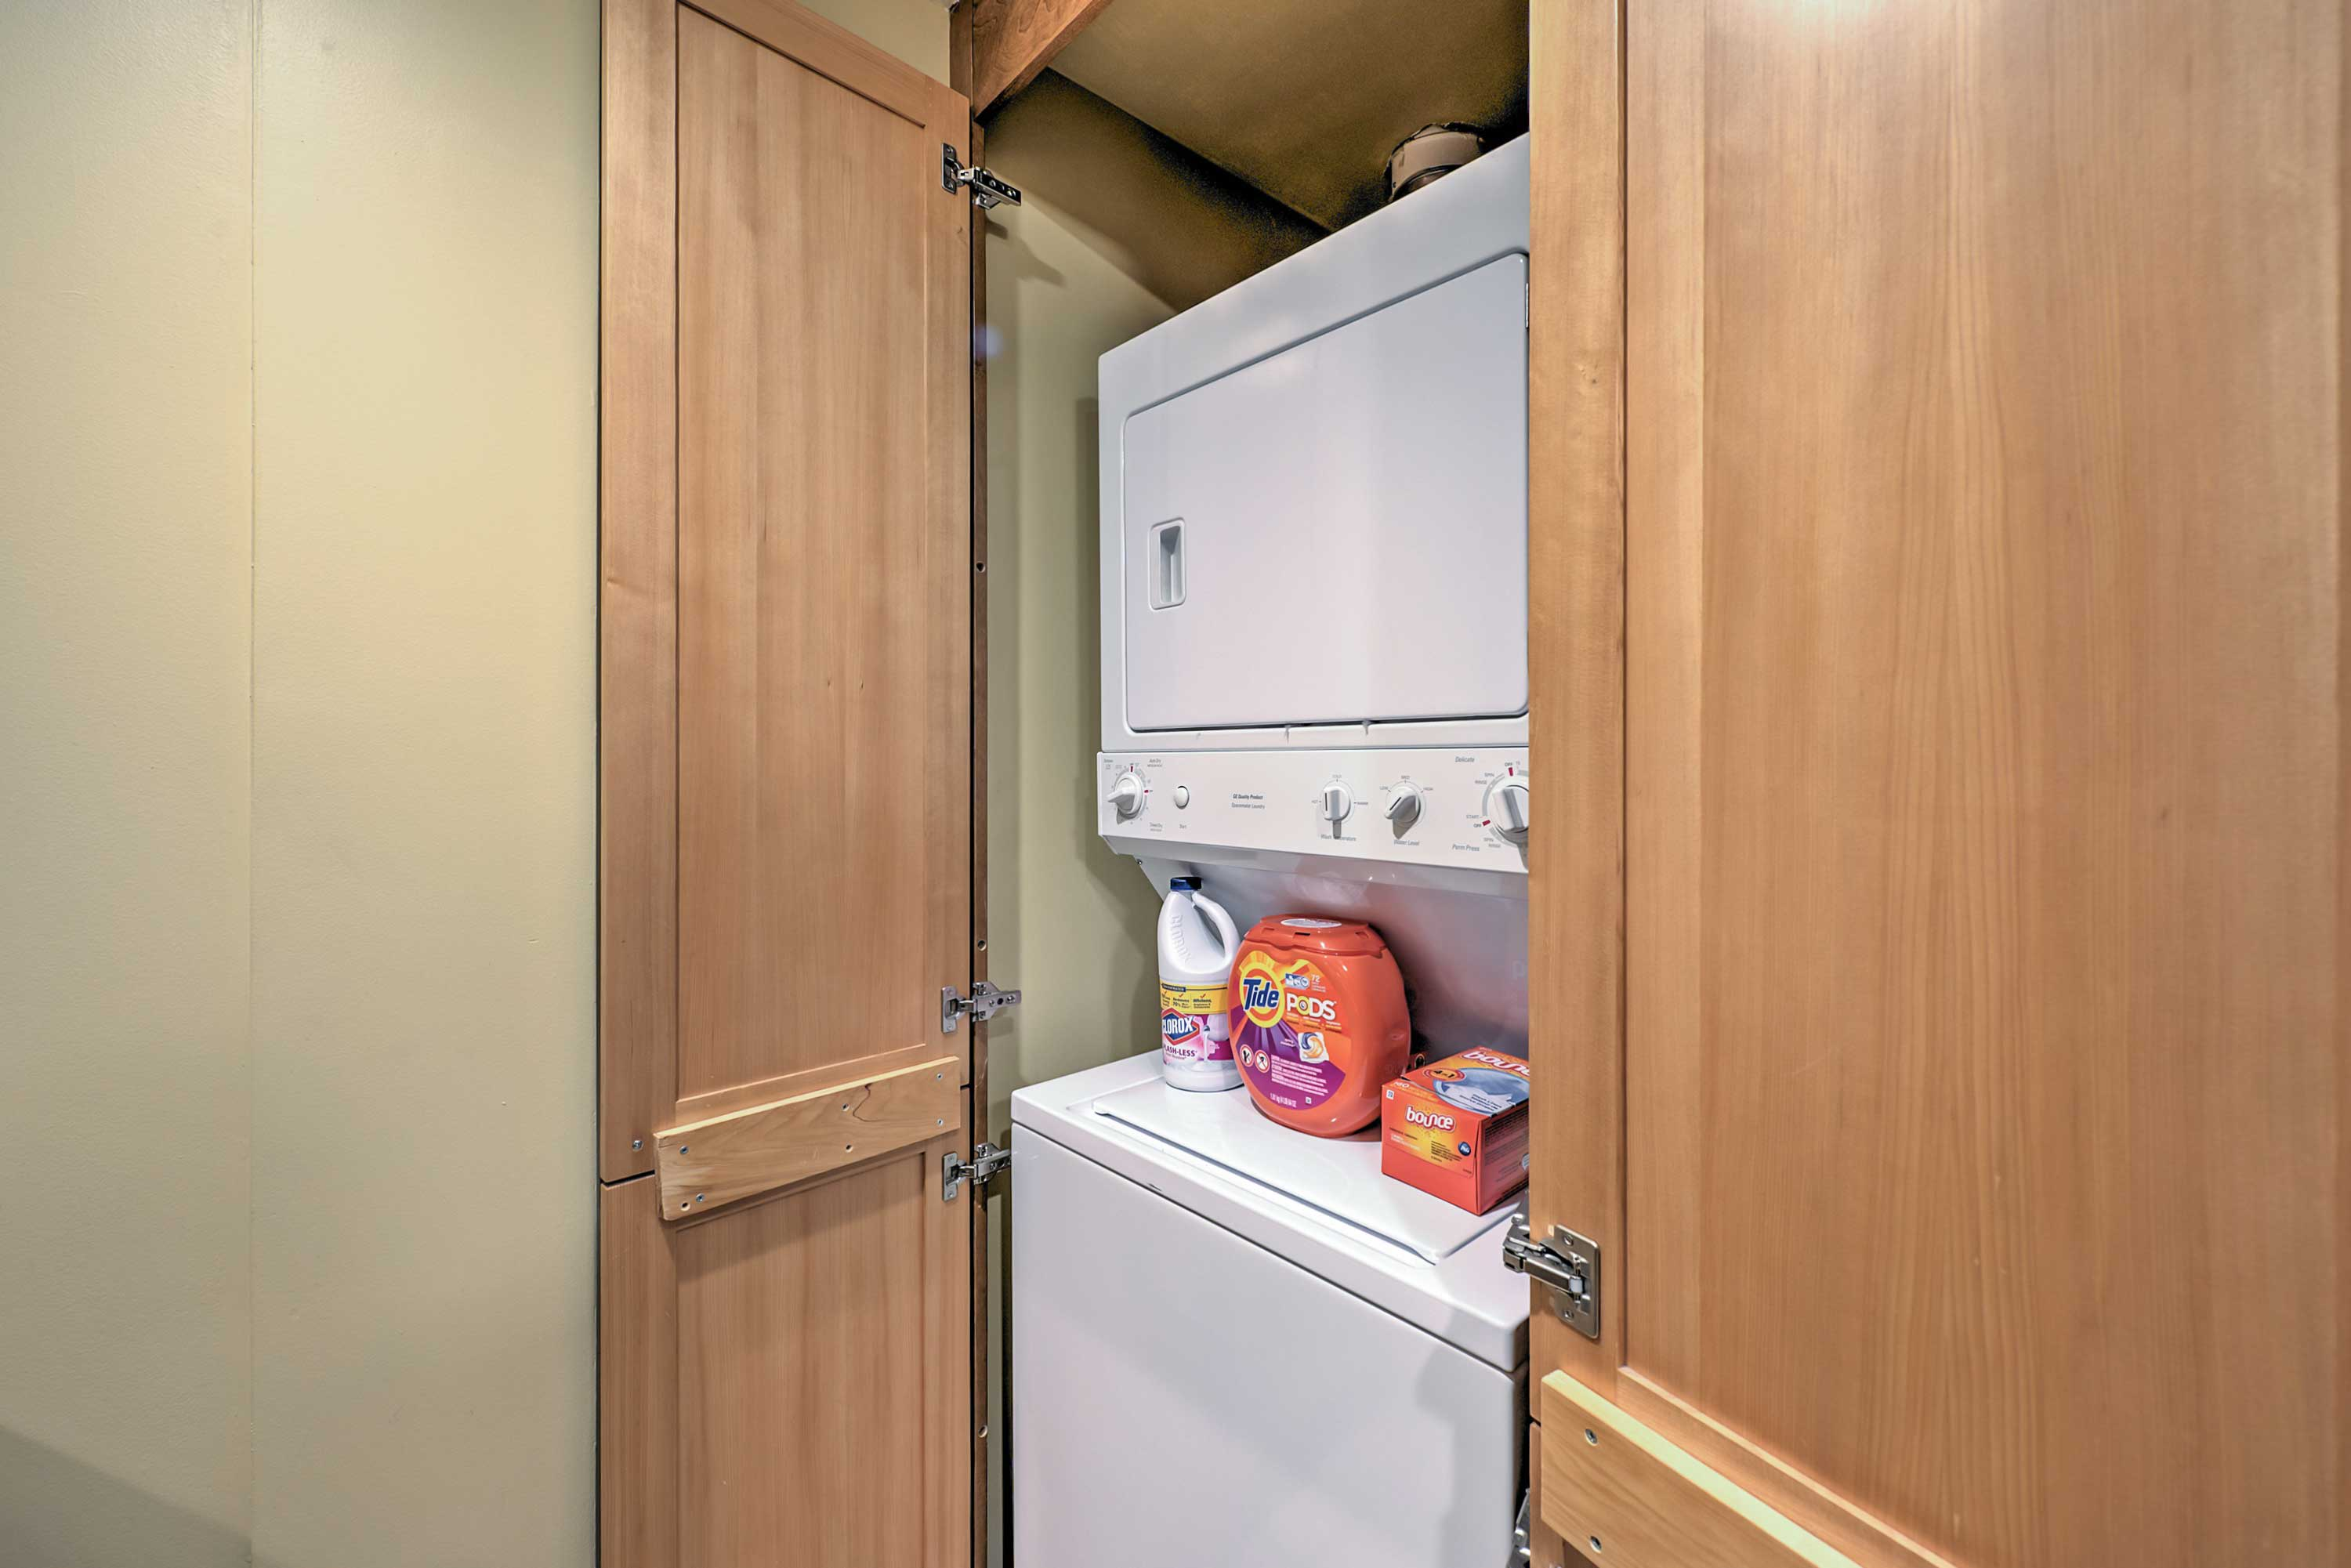 The in-unit washer and dryer will keep clothes and linens clean during your entire stay.